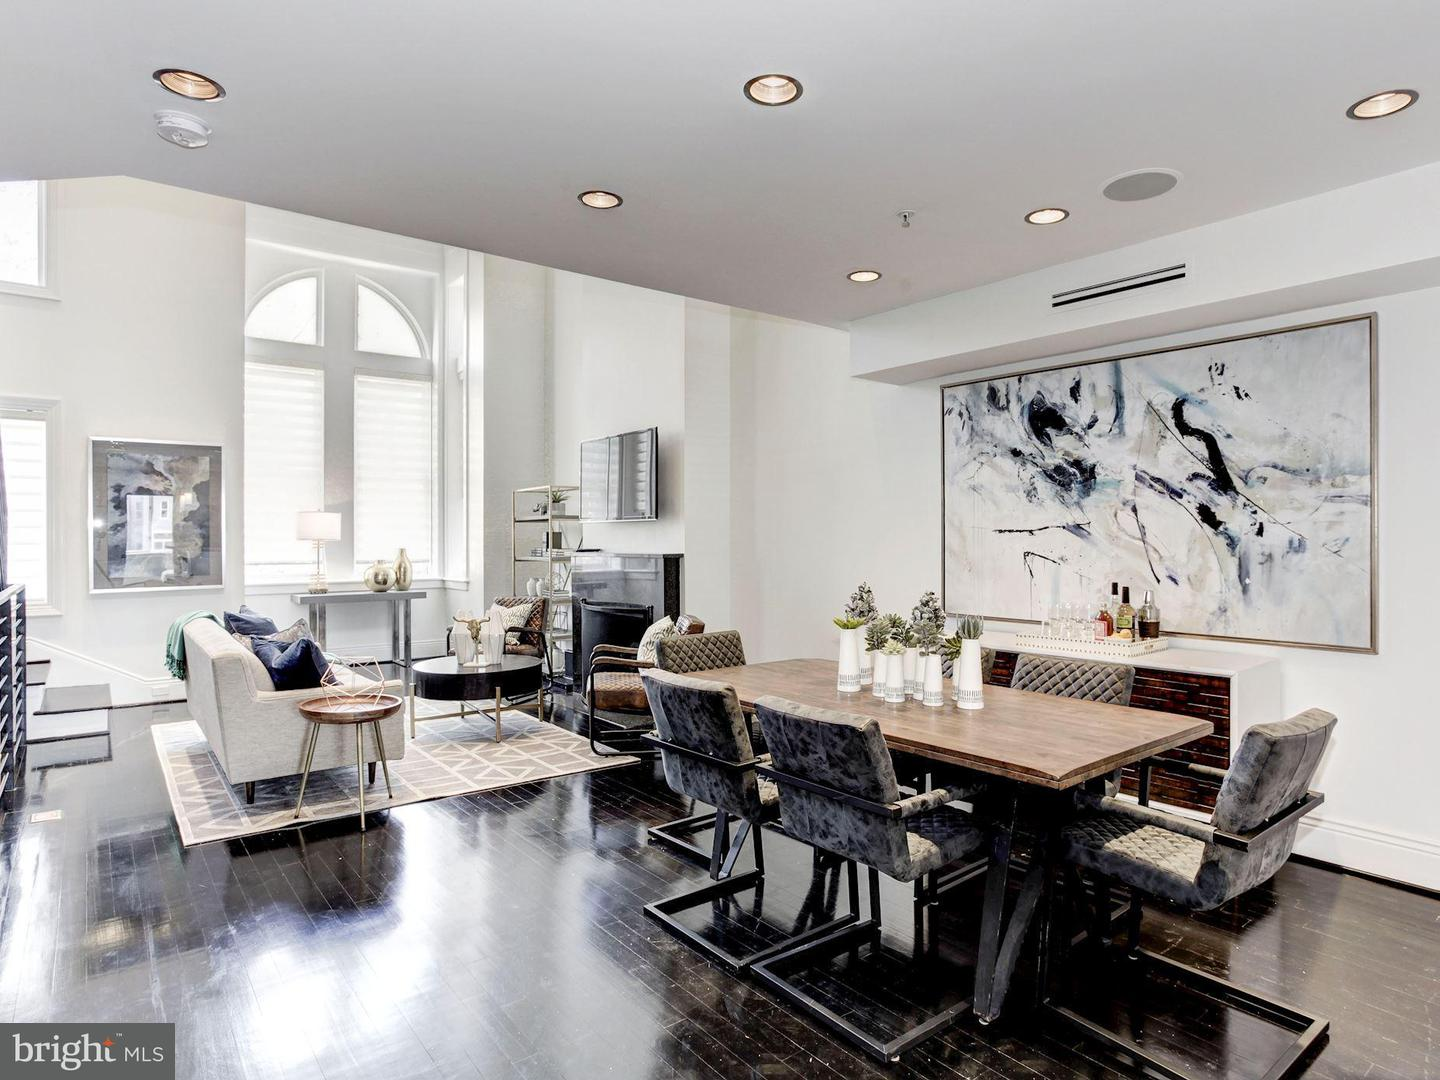 Single Family for Sale at 1920 12th St NW #2 Washington, District Of Columbia 20009 United States